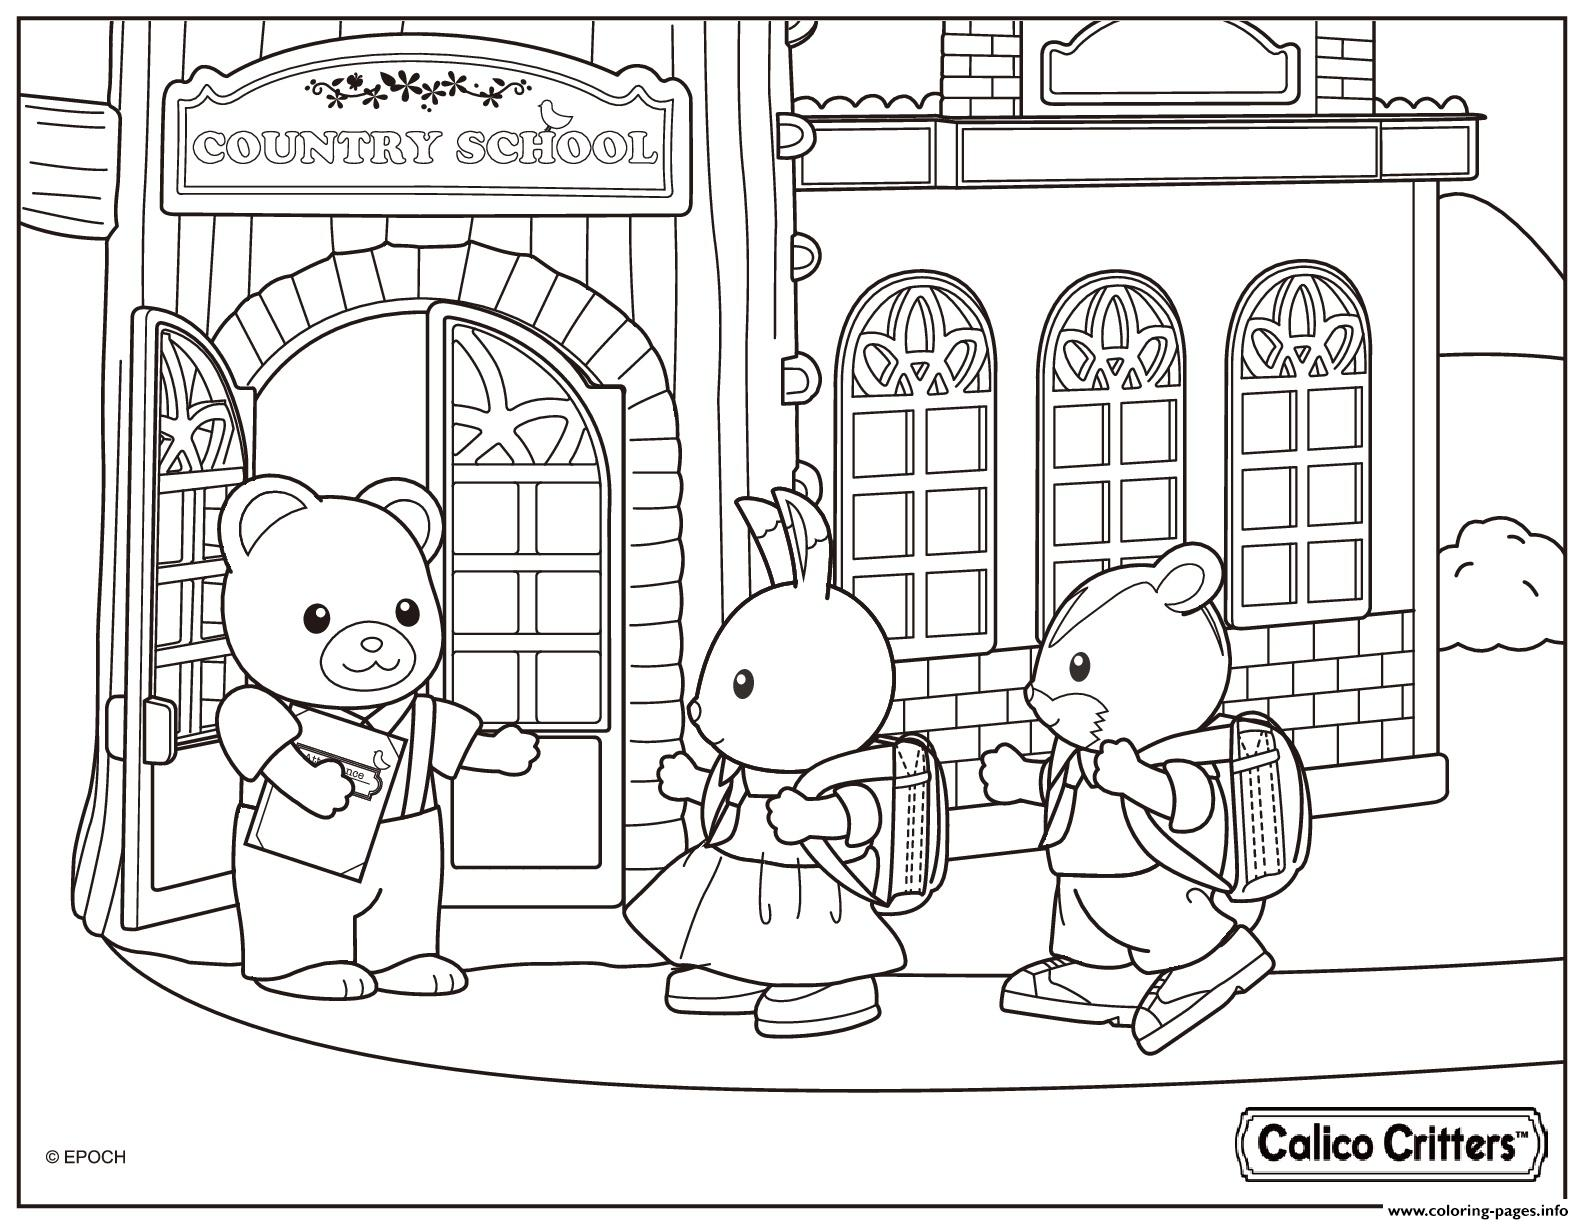 Calico Critters Country School Coloring Pages Printable